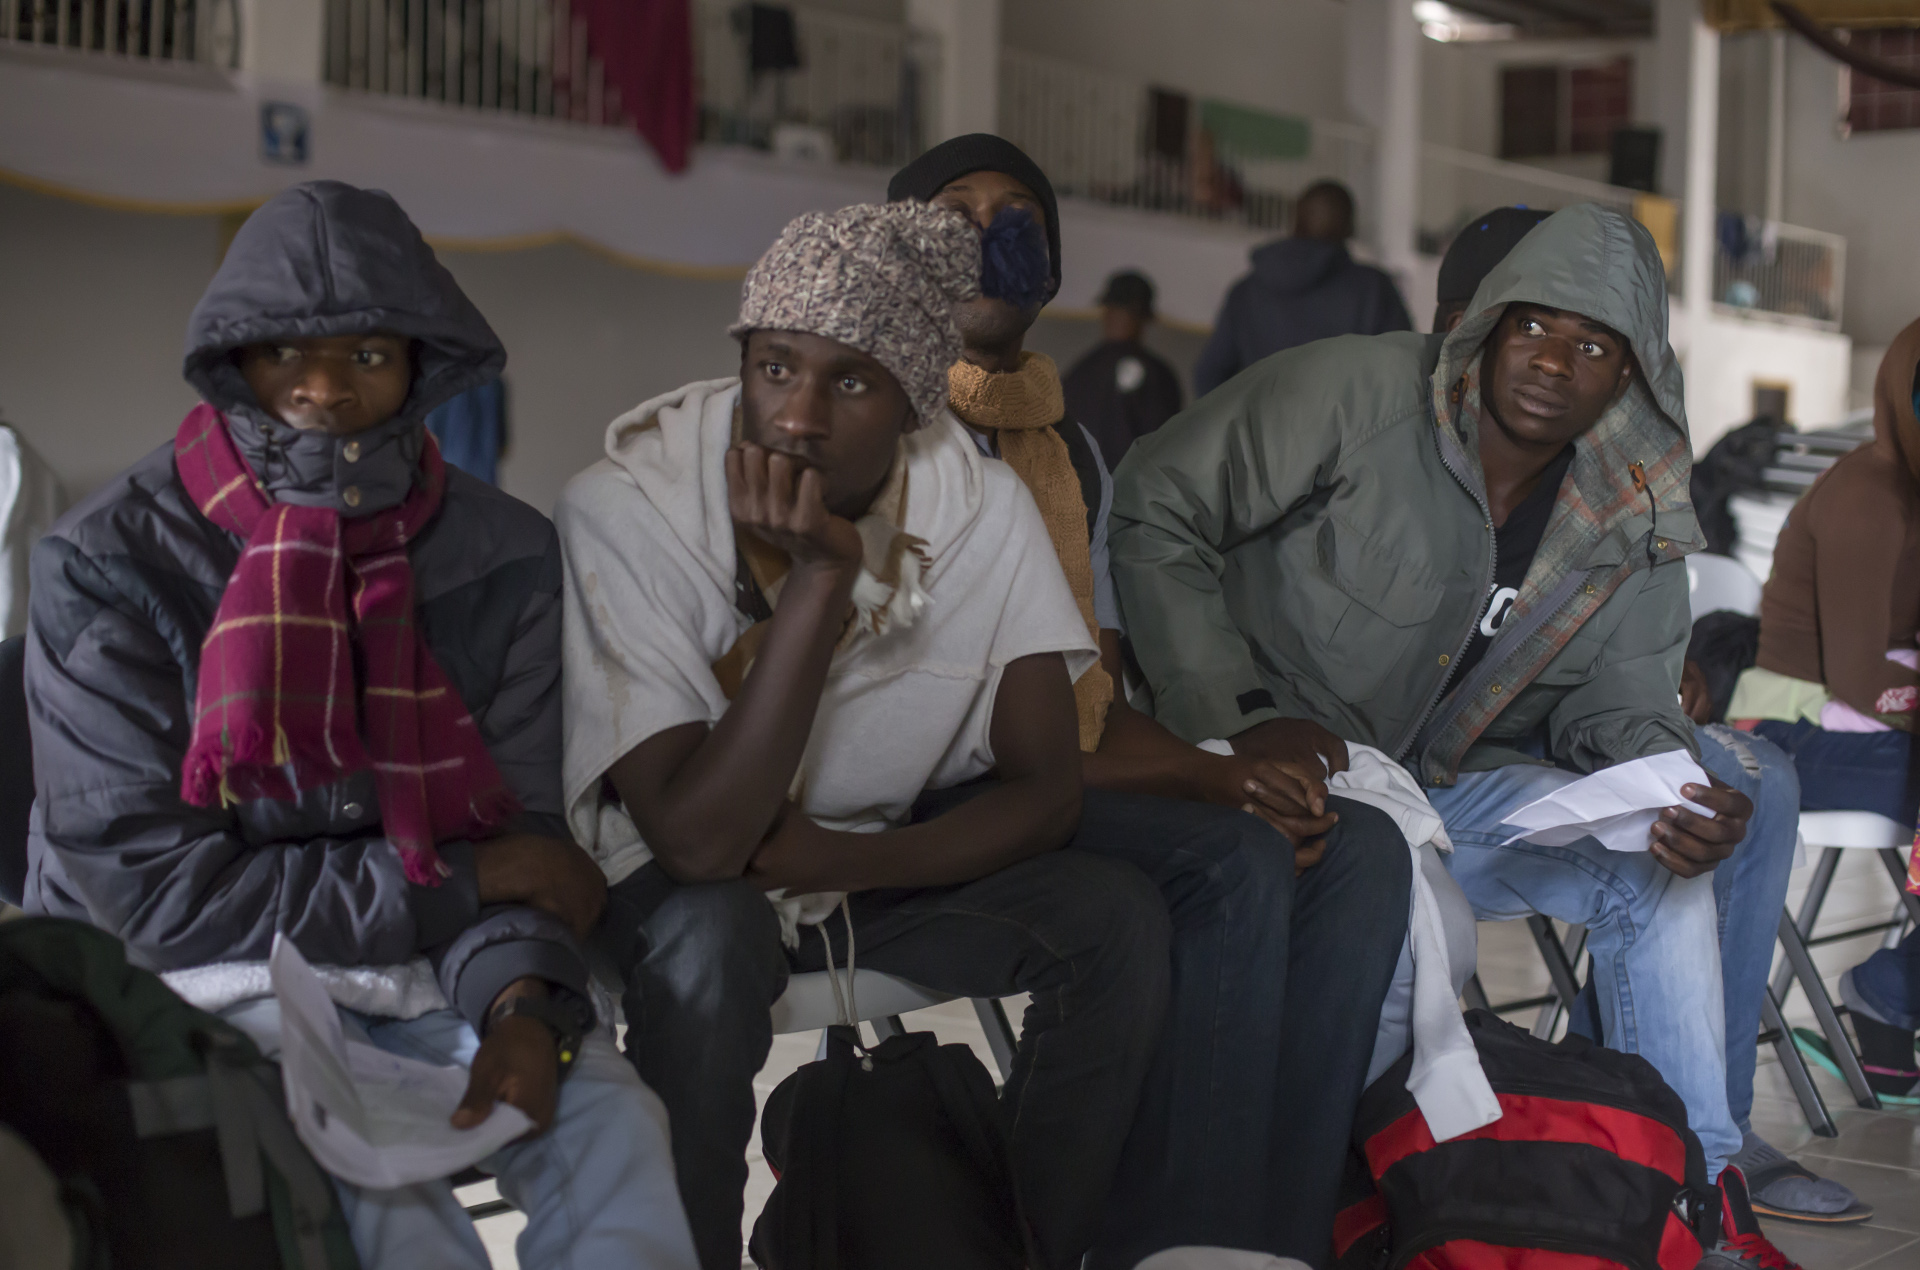 Mexican photojournalist Omar Martínez documents Haitians in Tijuana